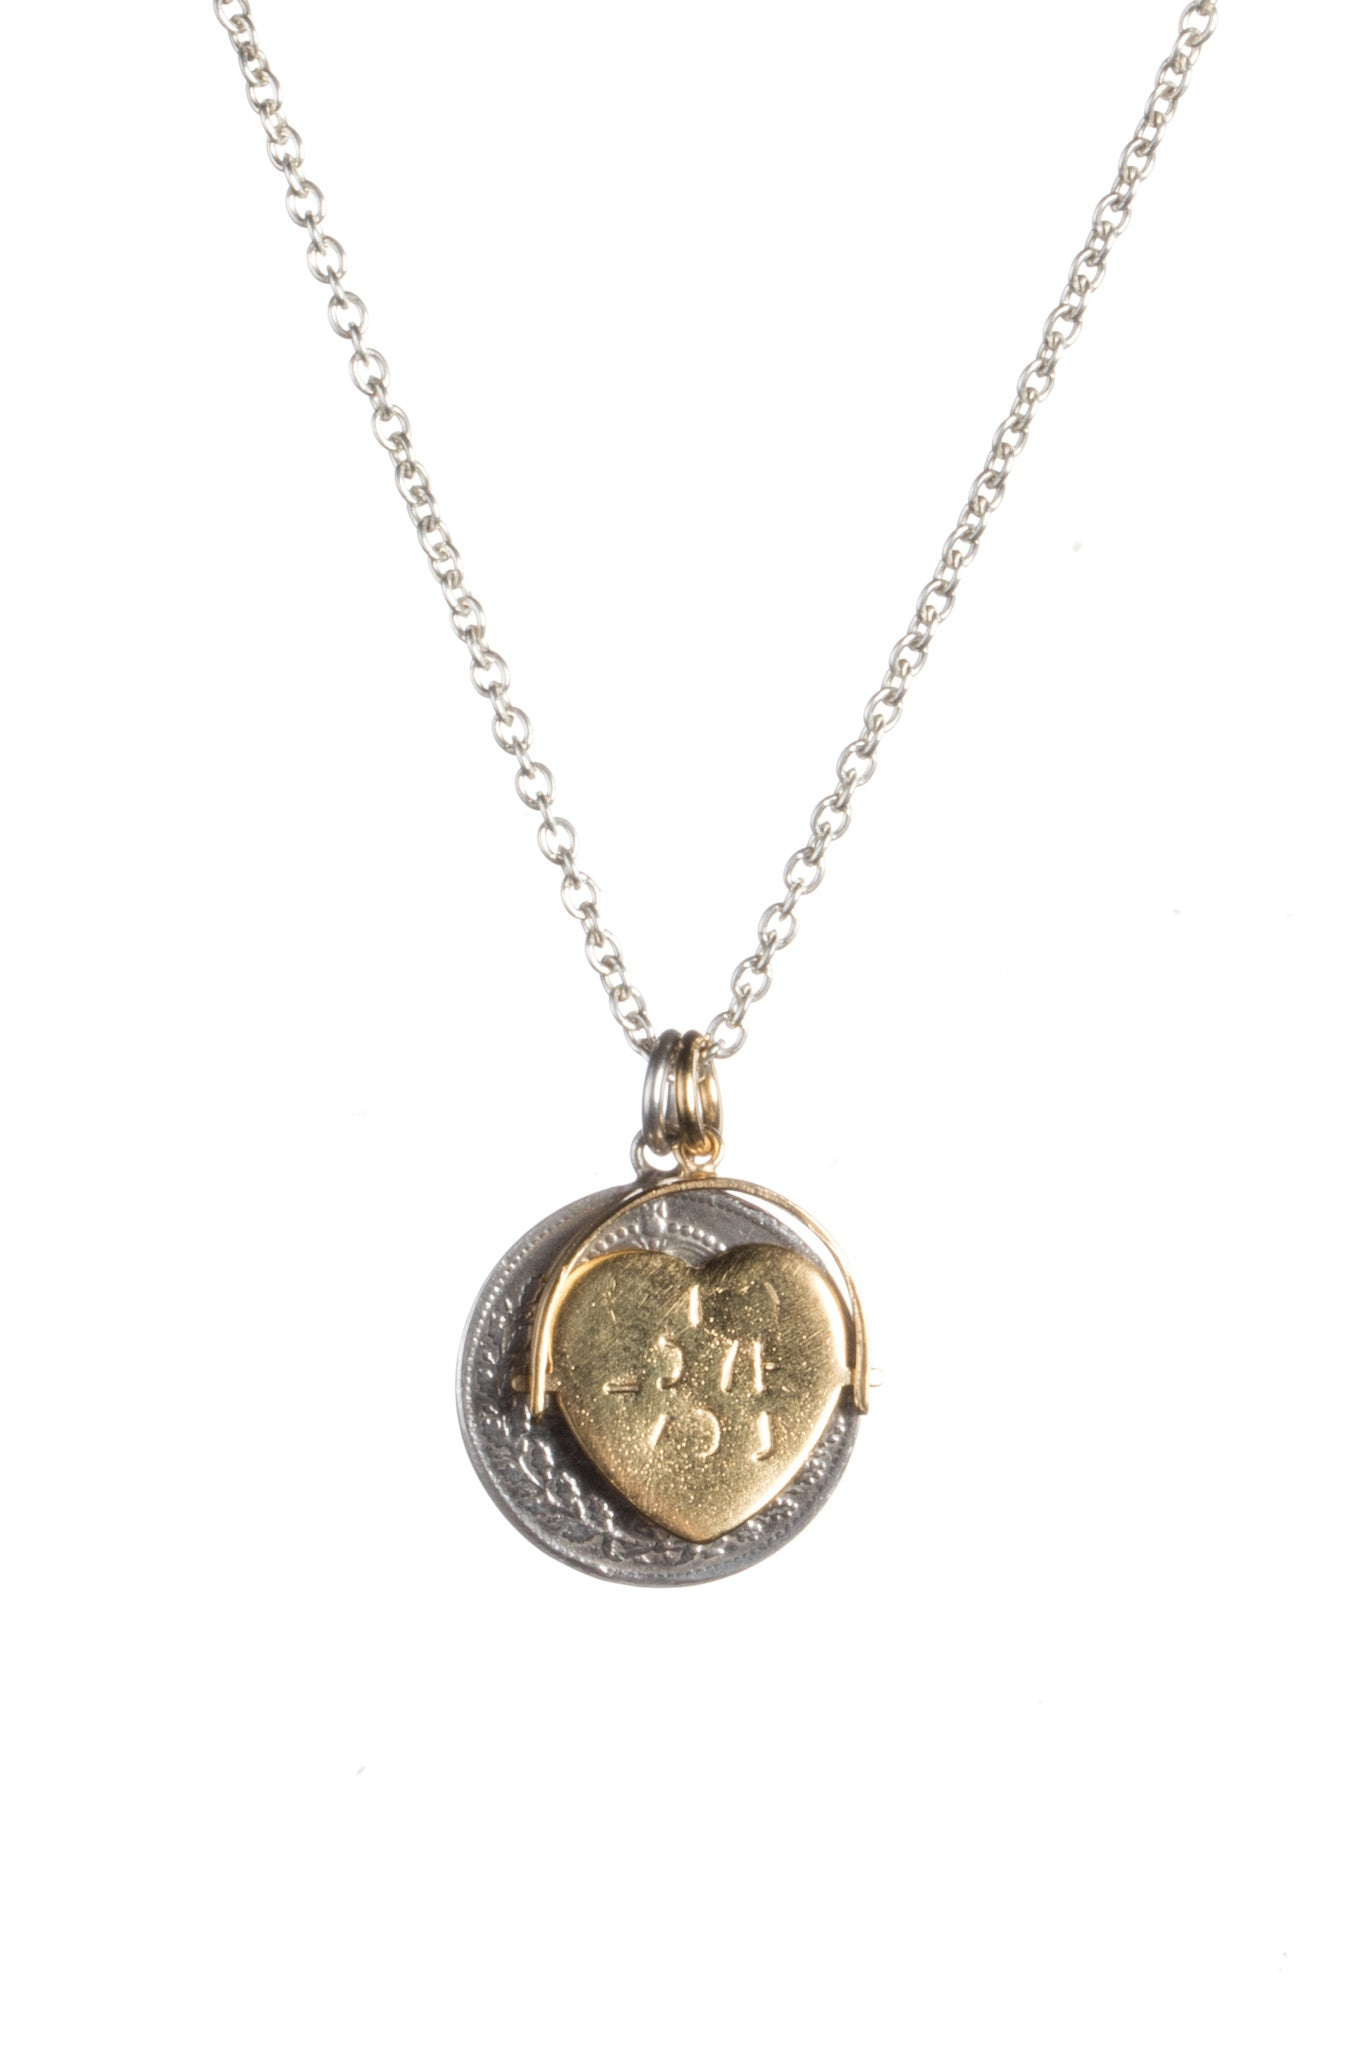 Victorian Silver Threepence Charm